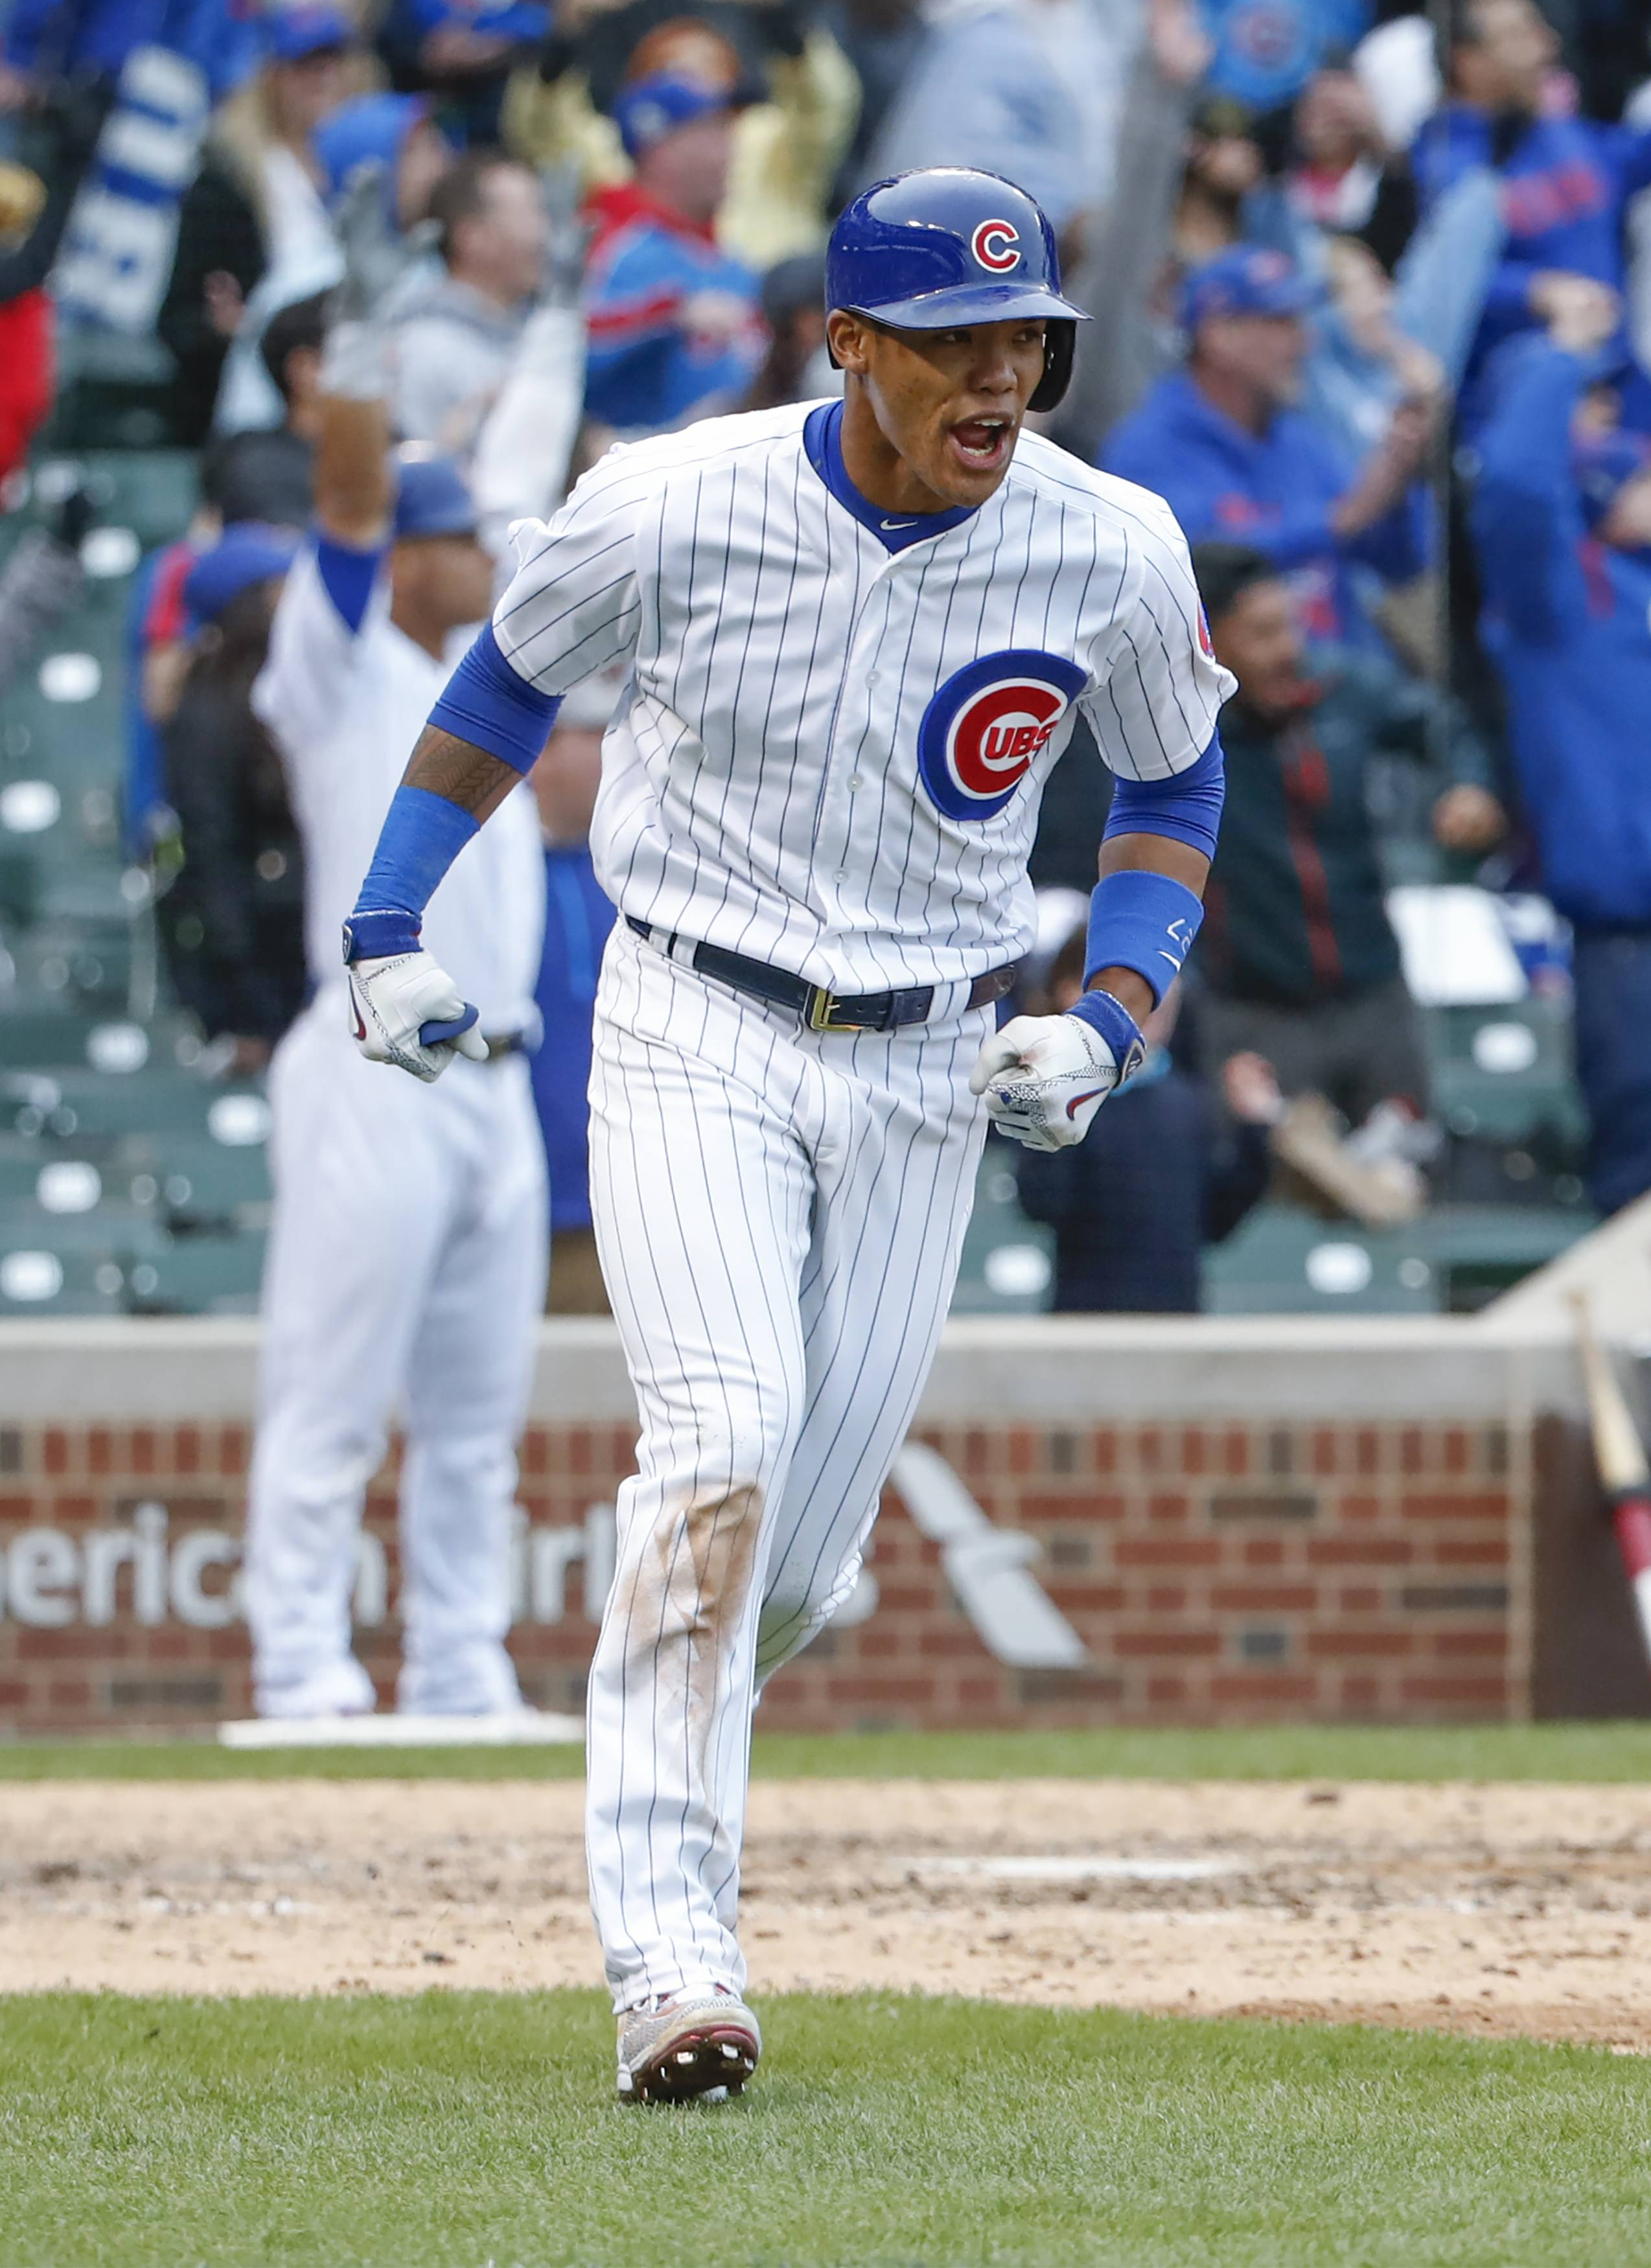 Never quit: Cubs walk off in dramatic fashion against Brewers